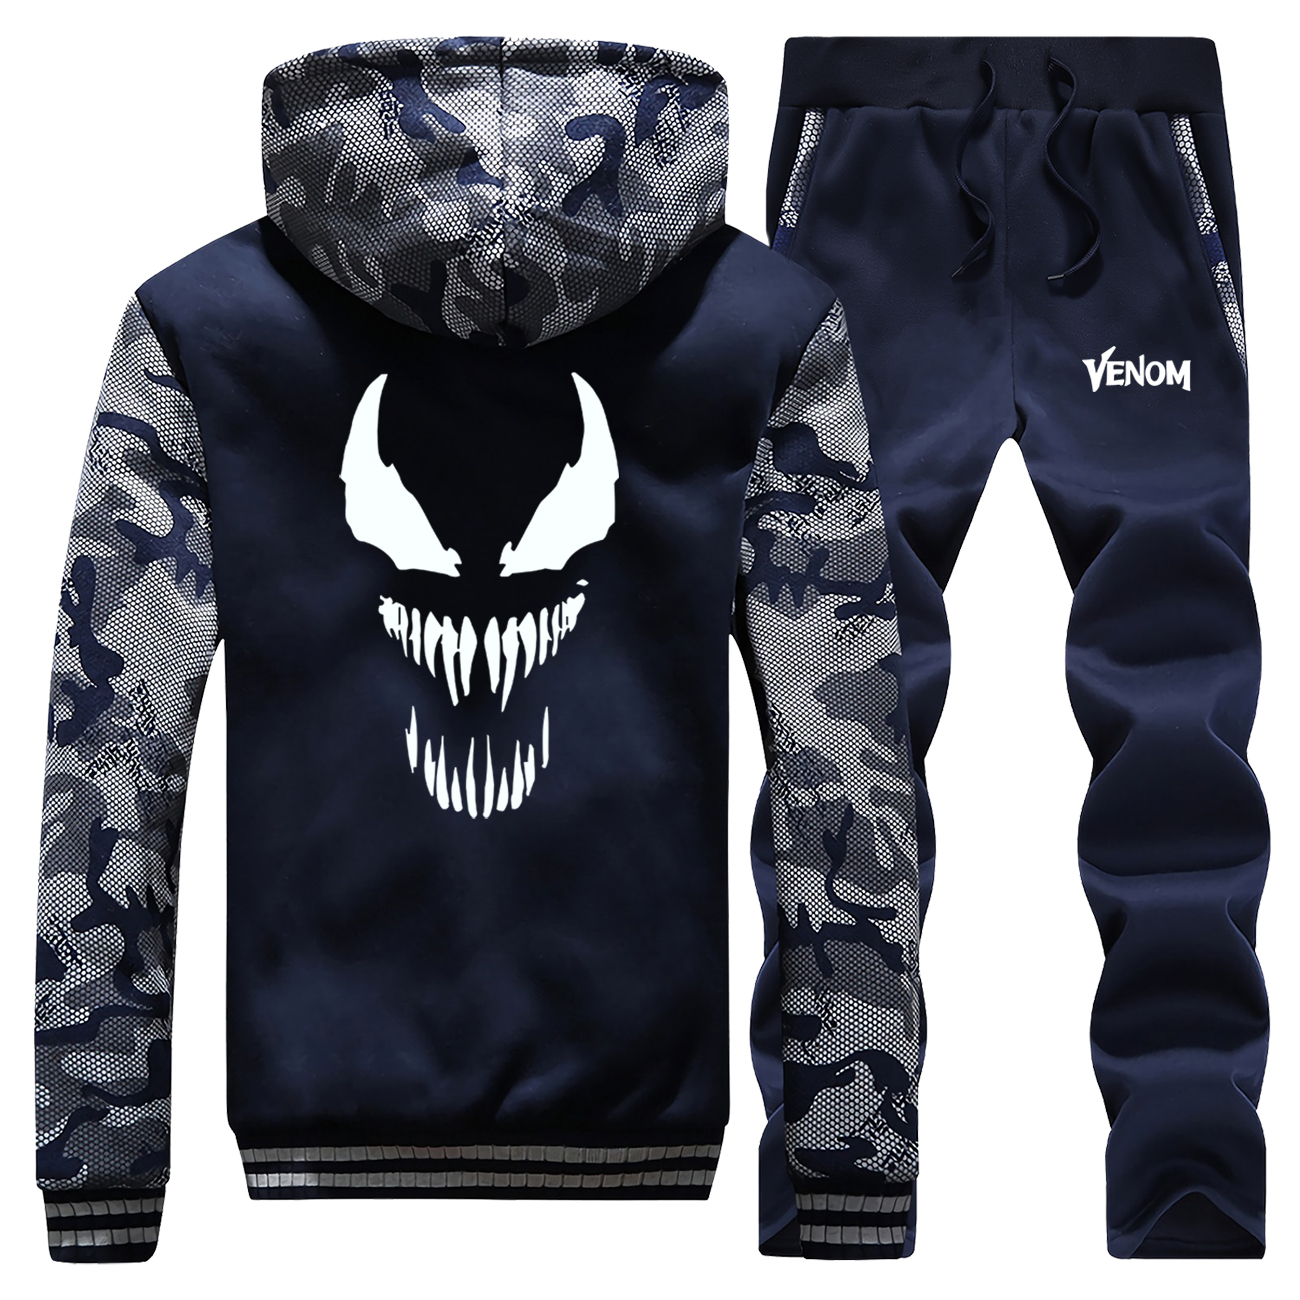 Marvel Sweatshirt Men Venom Marvel Superhero Anime Camo Hoodie Pants 2pcs Sets Men Funny Fleece Sportswear Harajuku Streetwear